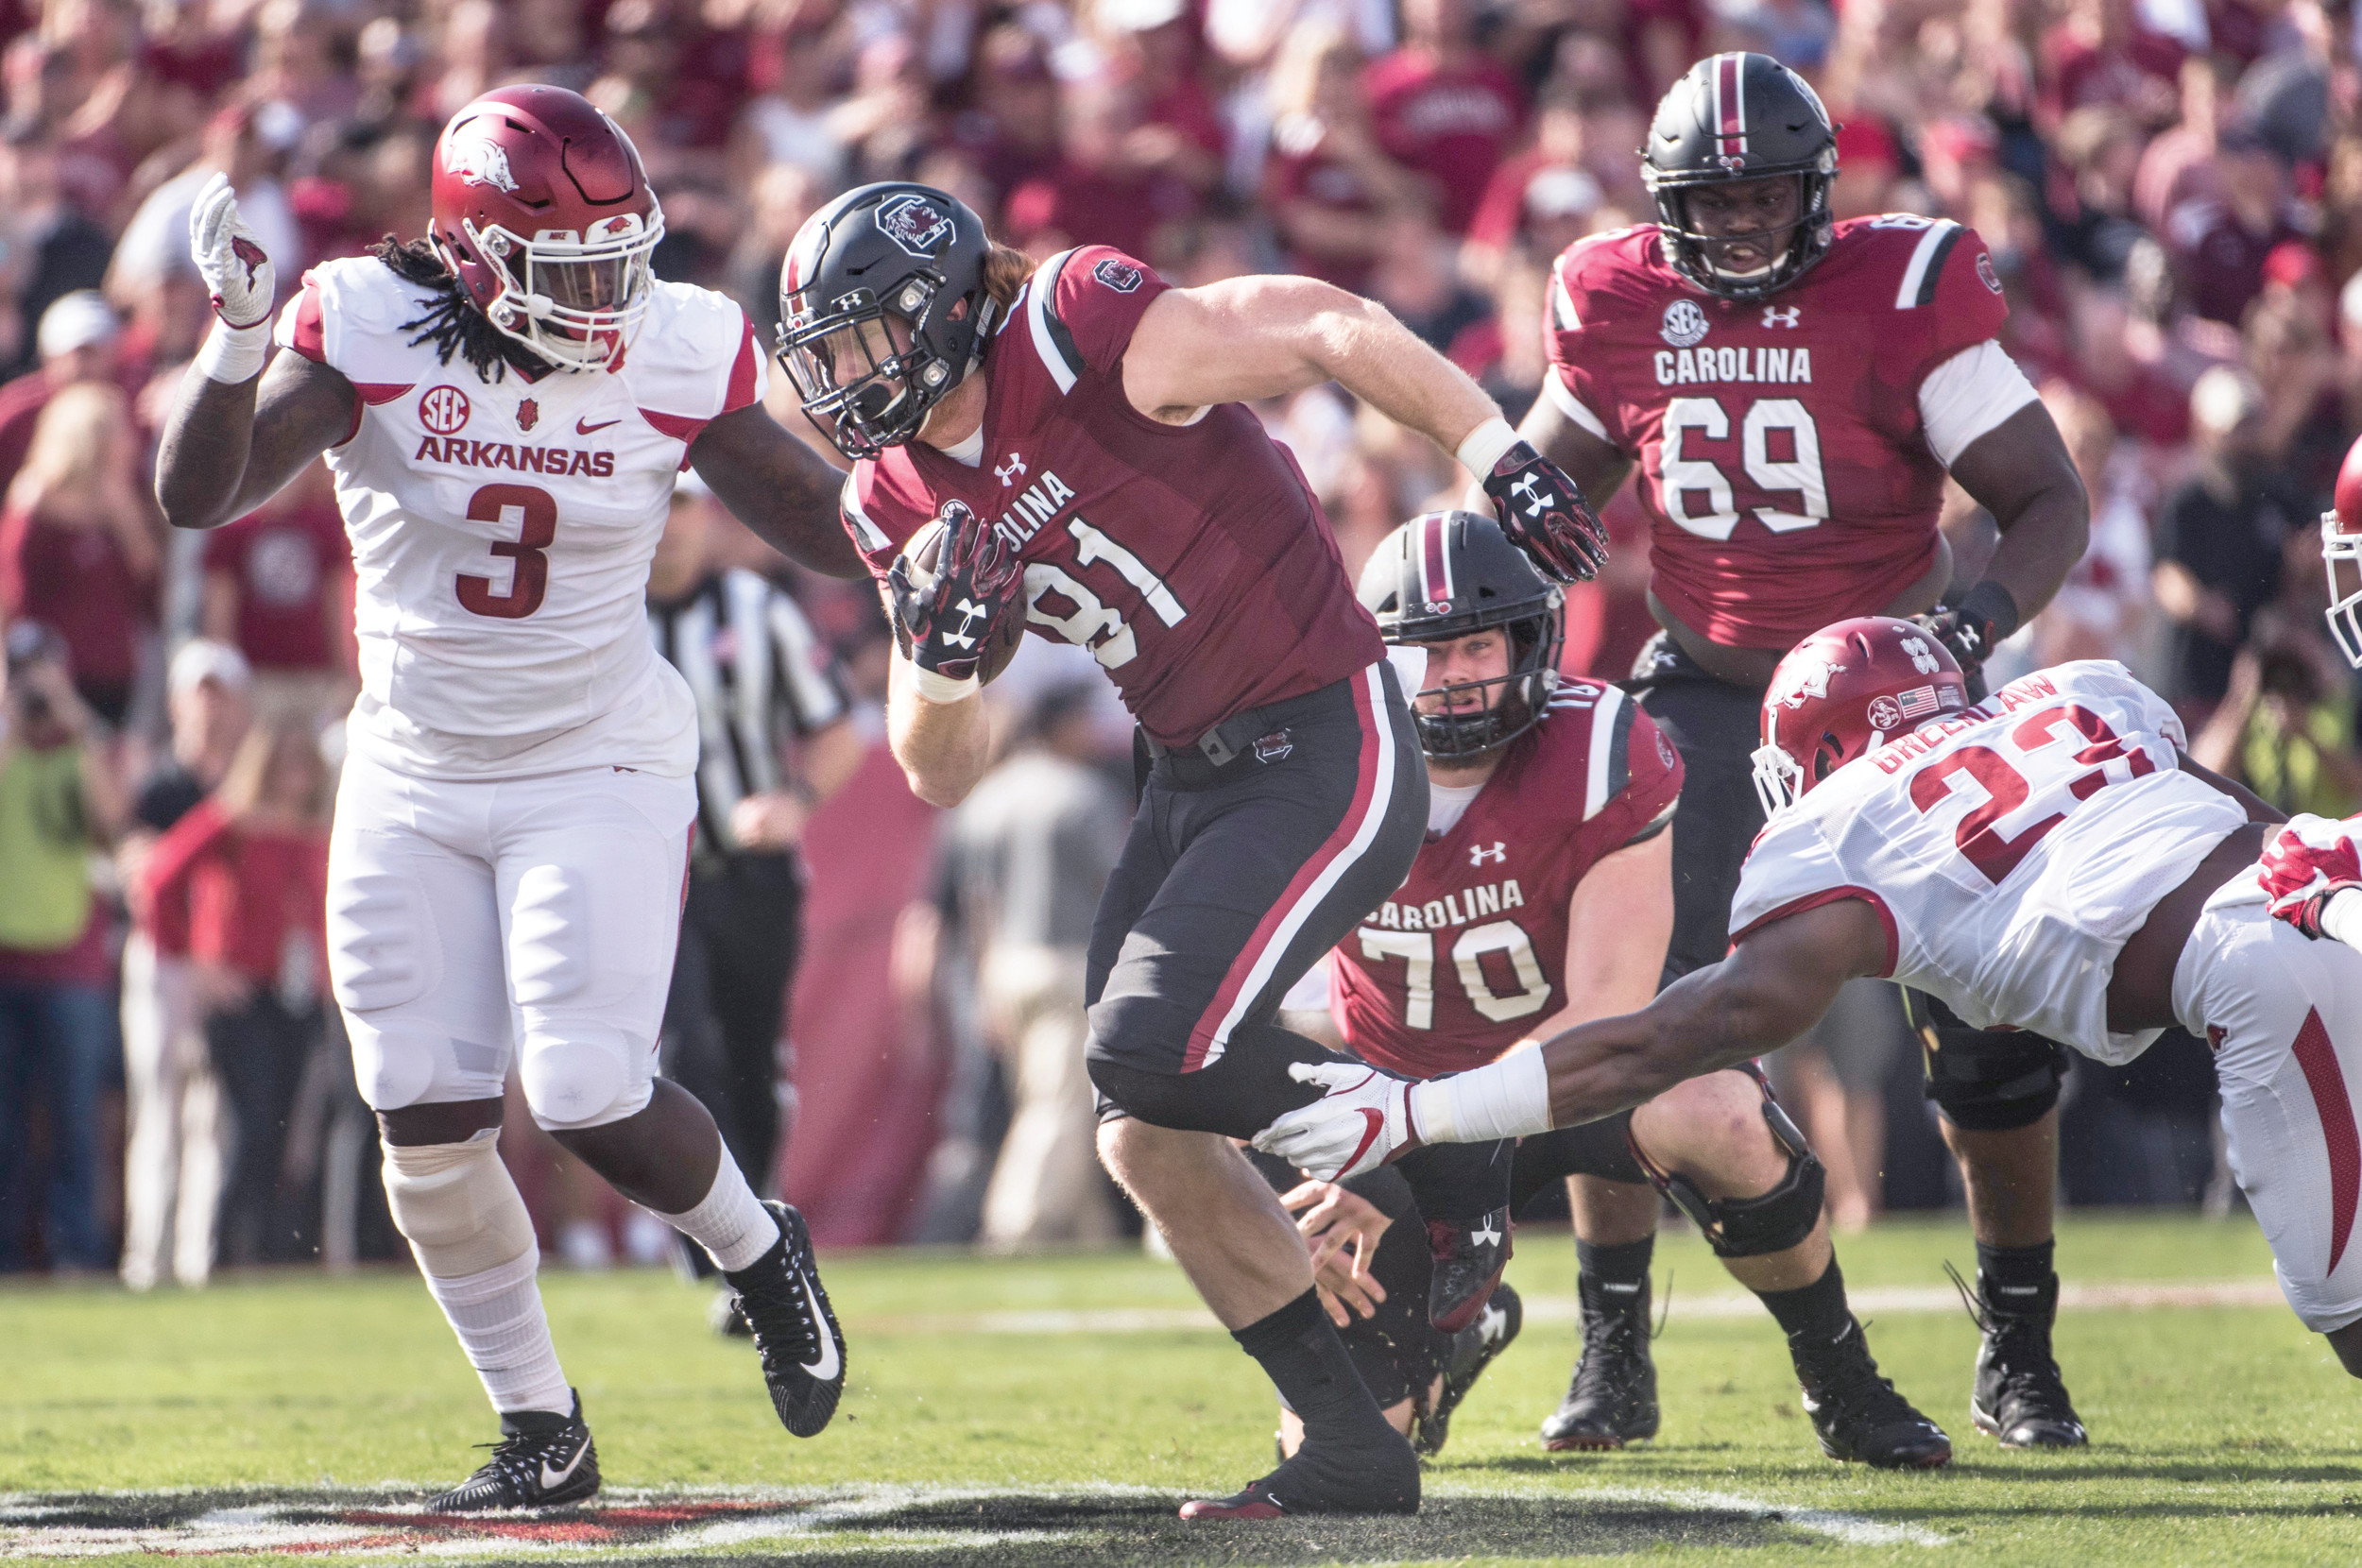 South Carolina tight end Hayden Hurst (81) runs as Arkansas defensive lineman McTelvin Agim (3) and Dre Greenlaw (23) defend during the Gamecocks' 48-22 victory on Saturday at Williams-Brice Stadium in Columbia.